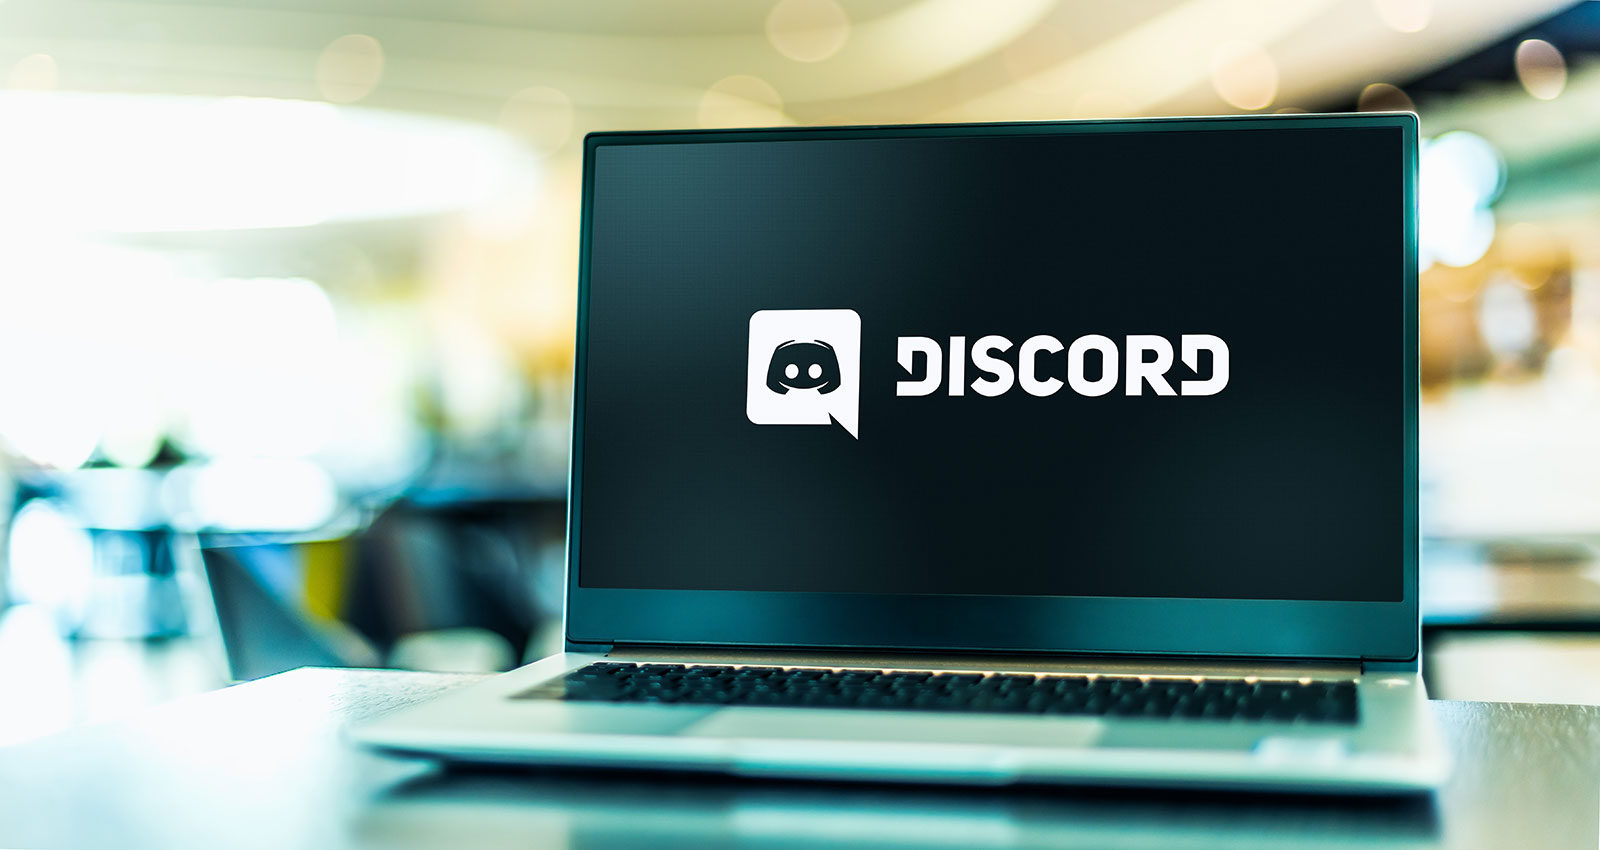 A Marketer's Guide to Discord: How the Platform Can Help Grow Your Business